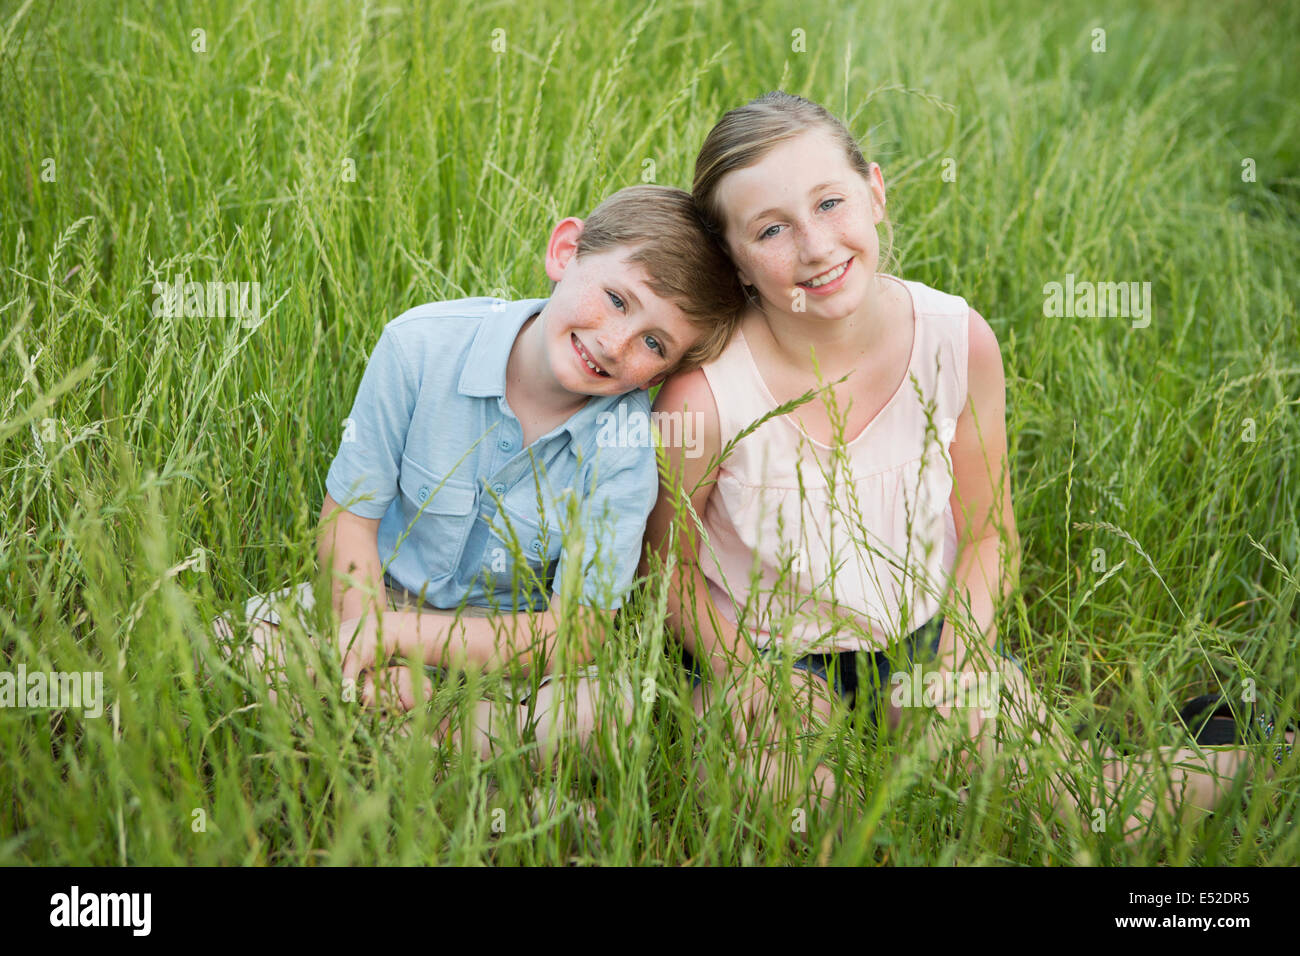 Brother and sister sitting side by side, in long grass. - Stock Image